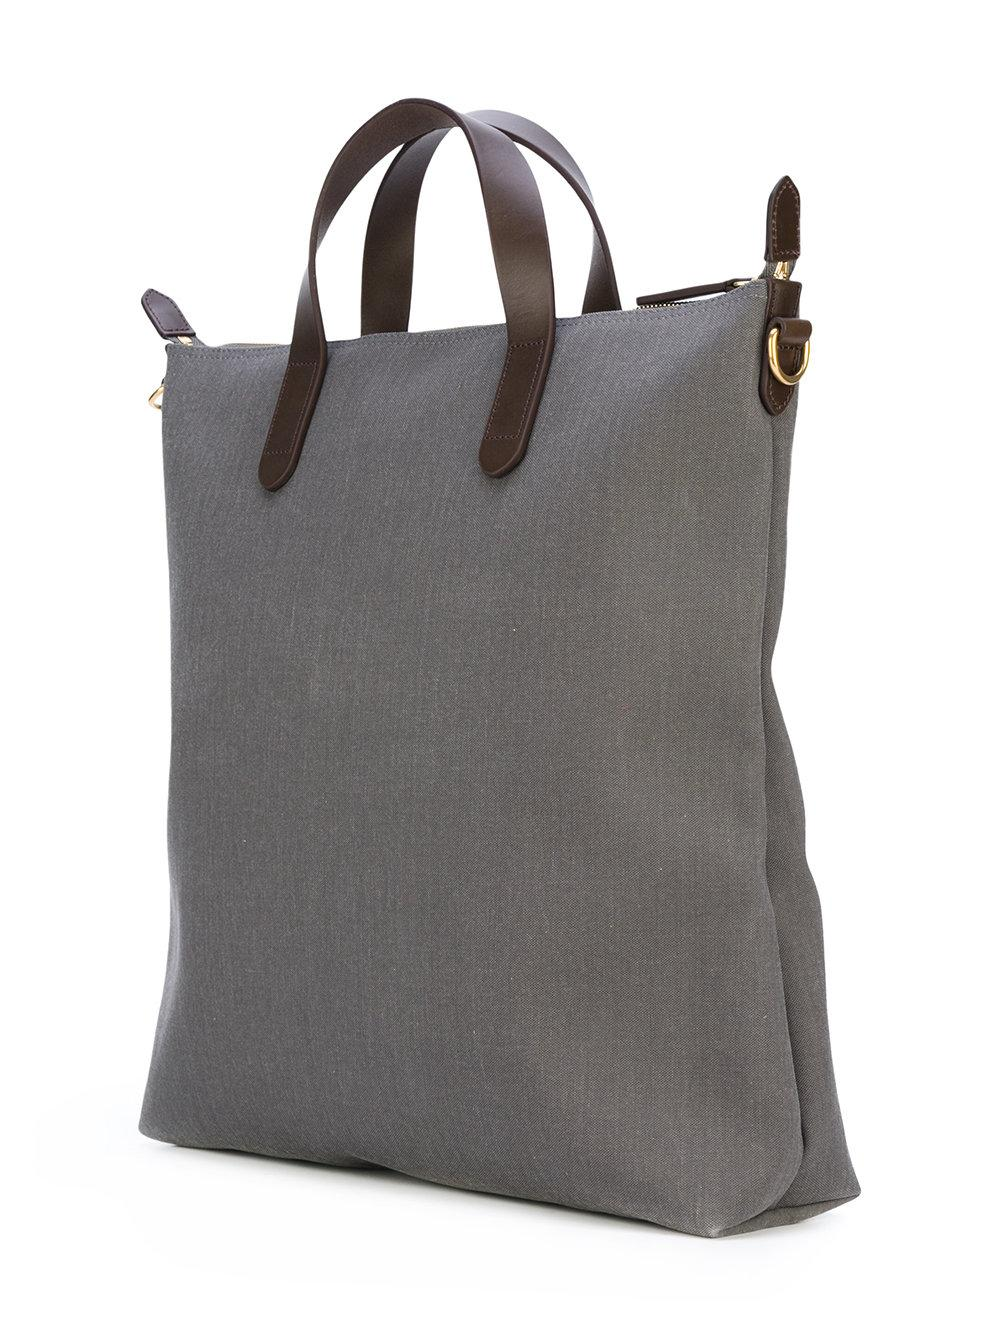 Discover the latest collection of Balenciaga Shopping Bags for Men at the official online store.